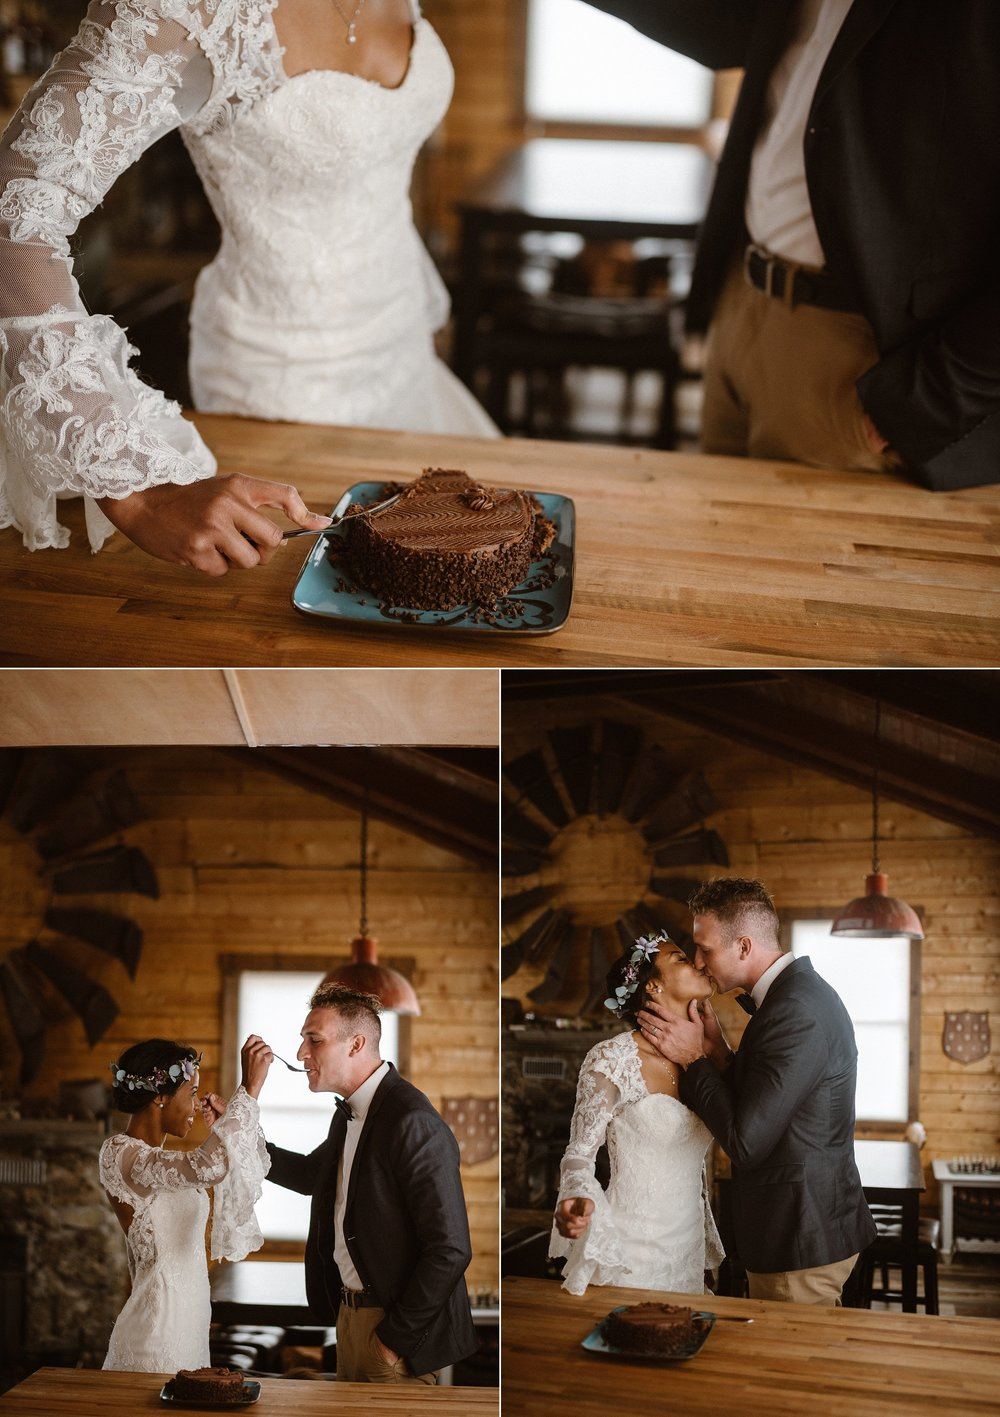 Home is where the heart, and the cake is! Although they threw out many of the norms of a traditional wedding, they did pick their favorite dark chocolate cake to celebrate their snowy intimate elopement through the Colorado mountains. Photos by wedding photographer Maddie Mae.